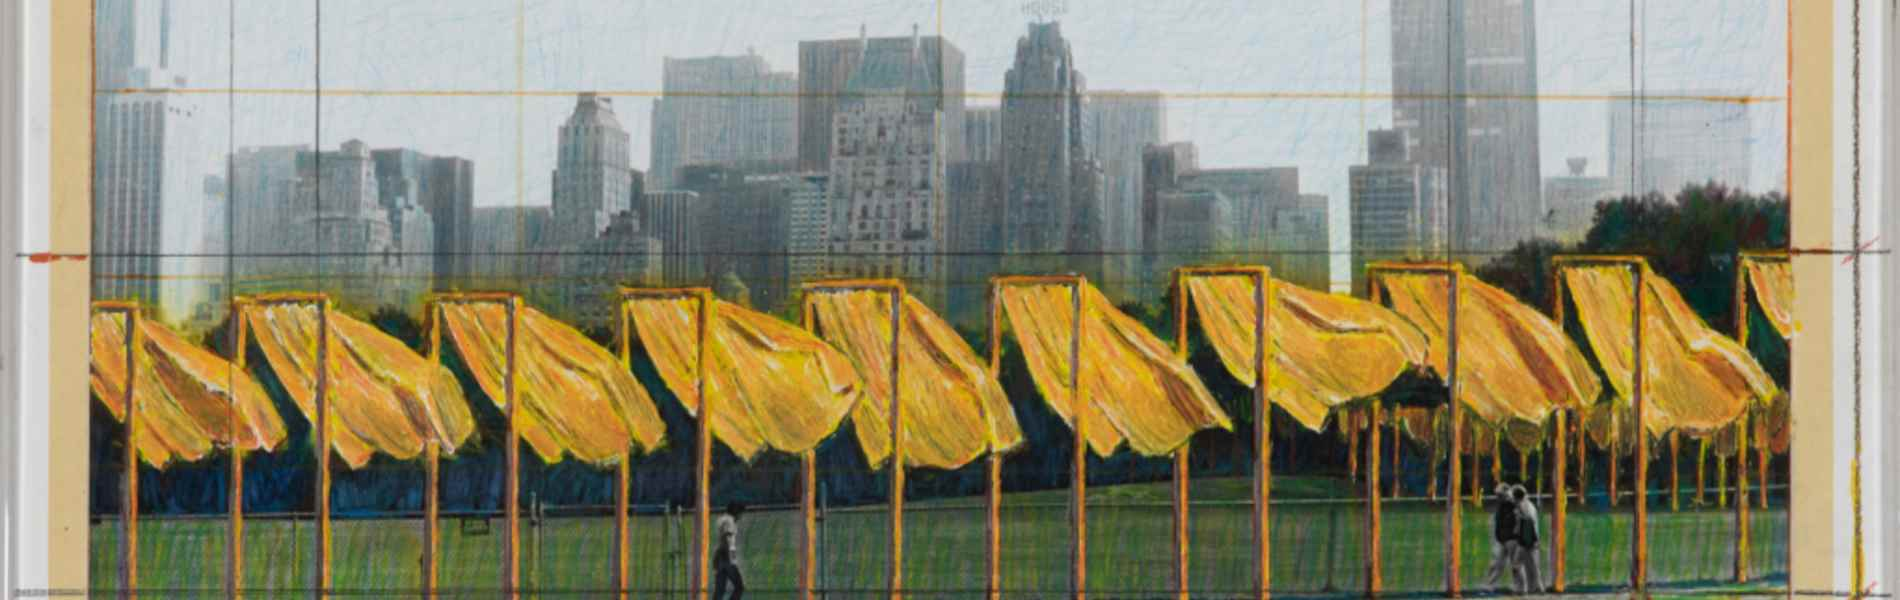 CHRISTO (1935 - 2020)<br><br>The Gates, Project for Central Park, New York City<br>